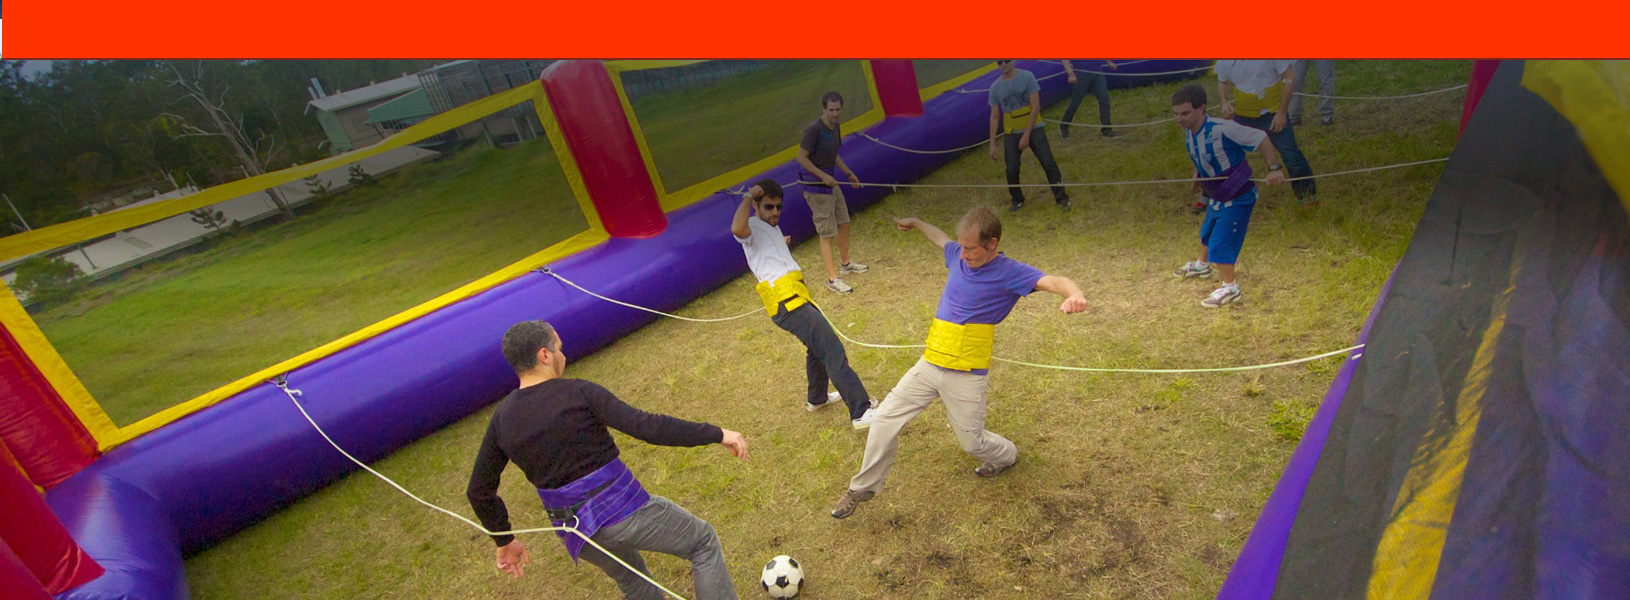 Football - Elite Event Services Company Events